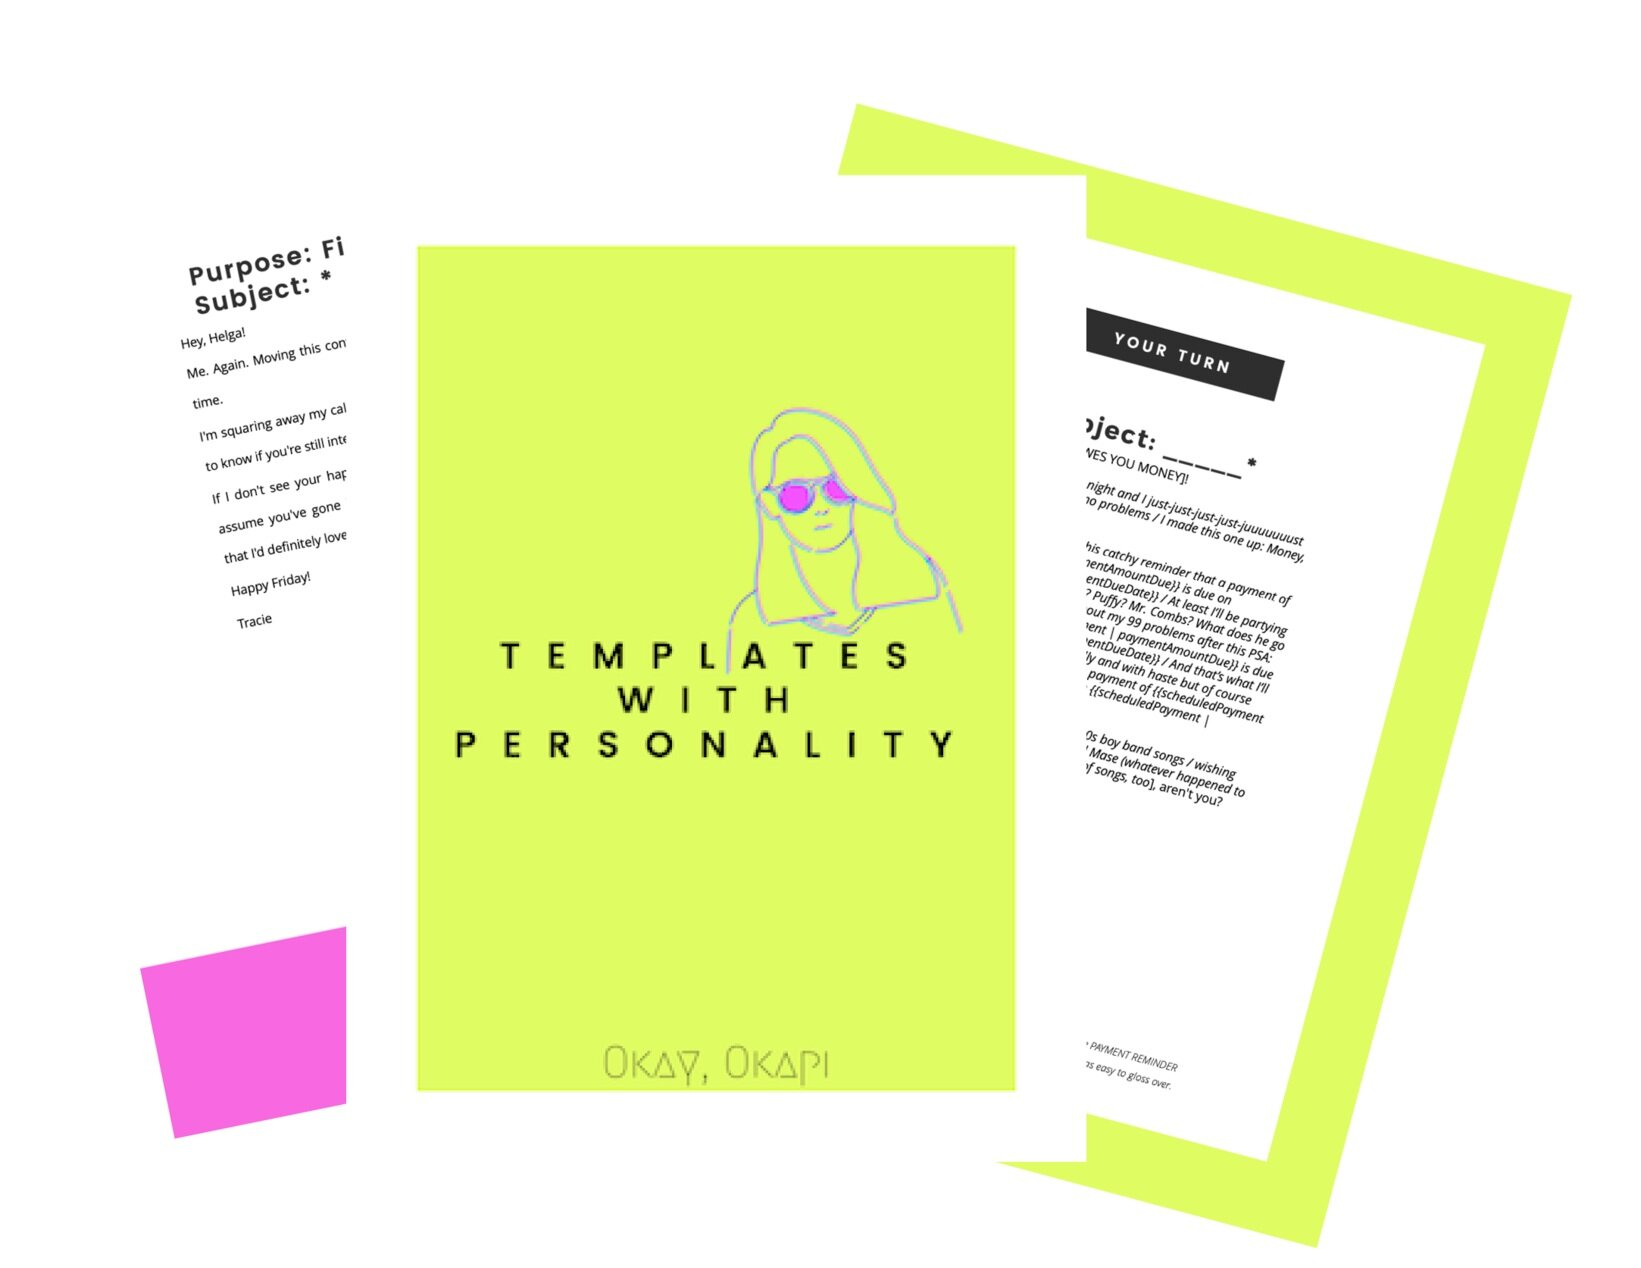 templates+with+personality+email+swipe+file